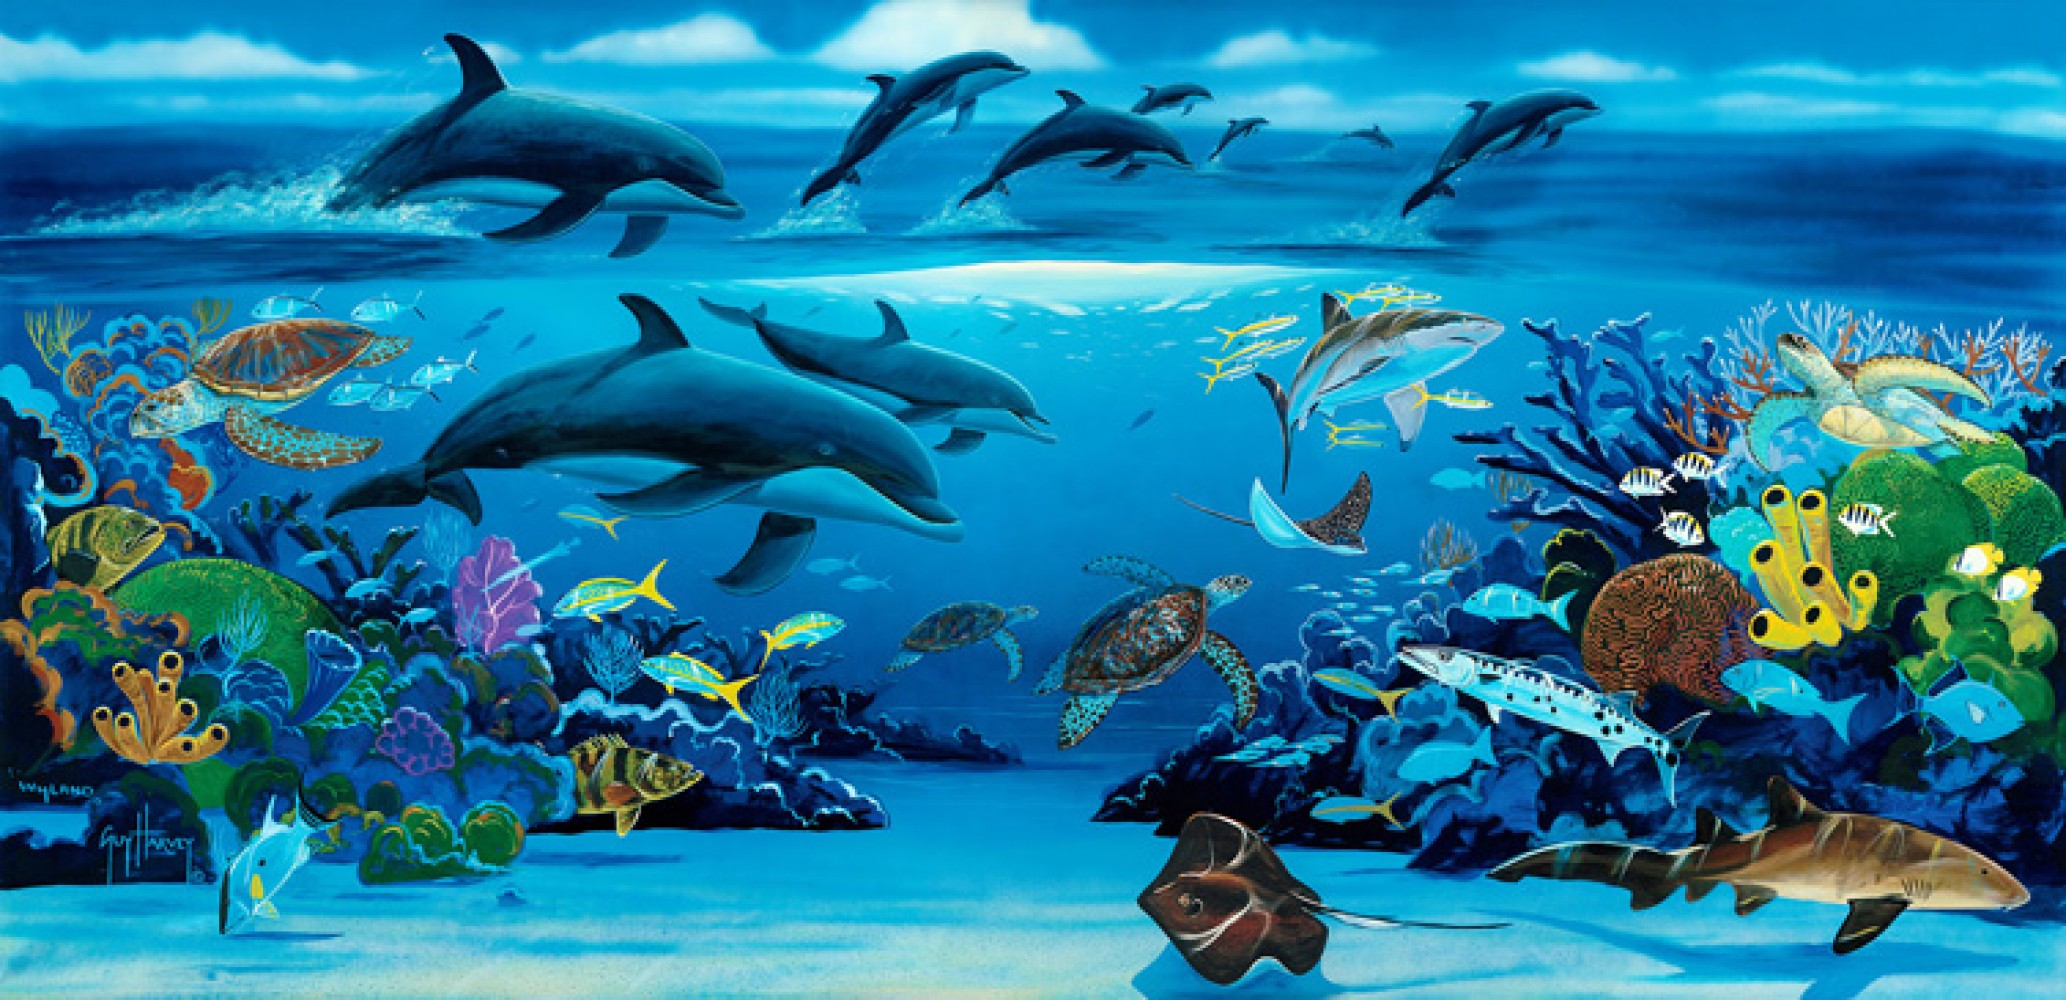 Robert wyland art for sale for Dolphin paradise wall mural